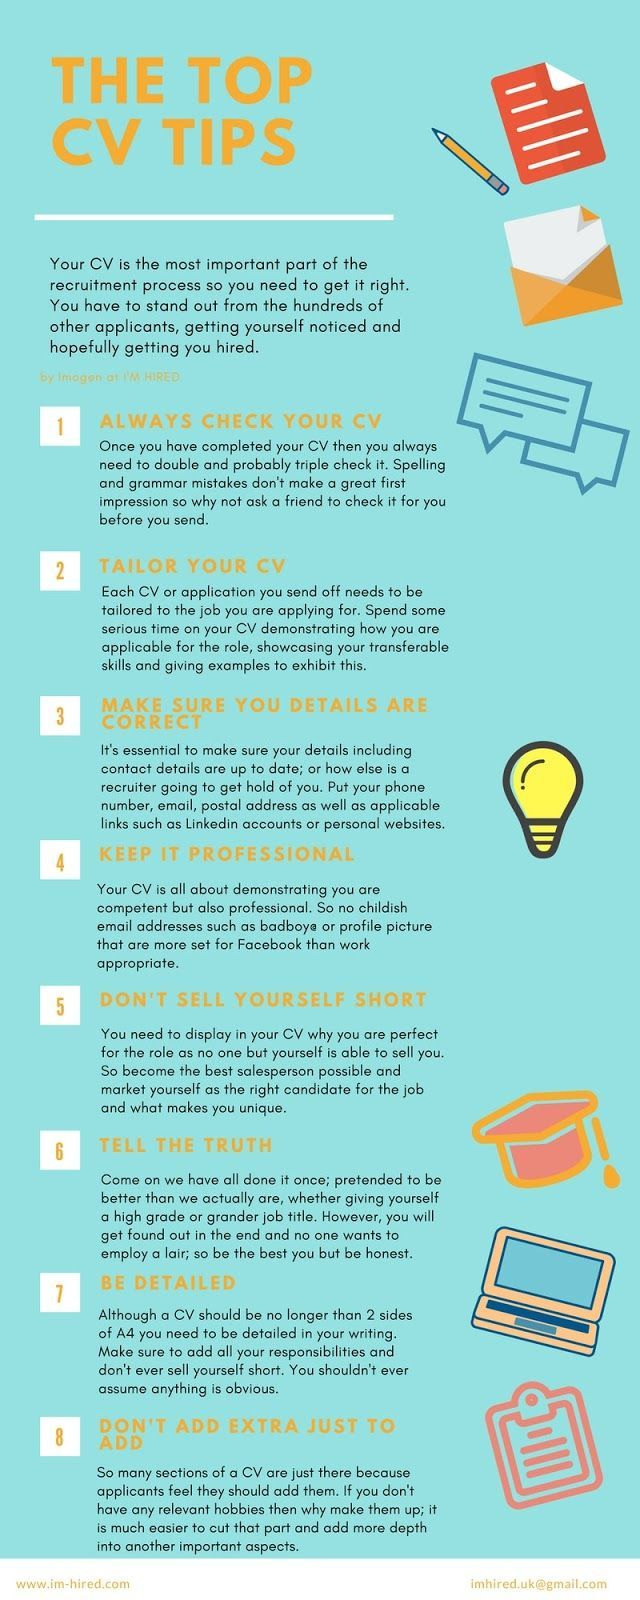 Cv Top Tips - How To Get Your Cv Noticed